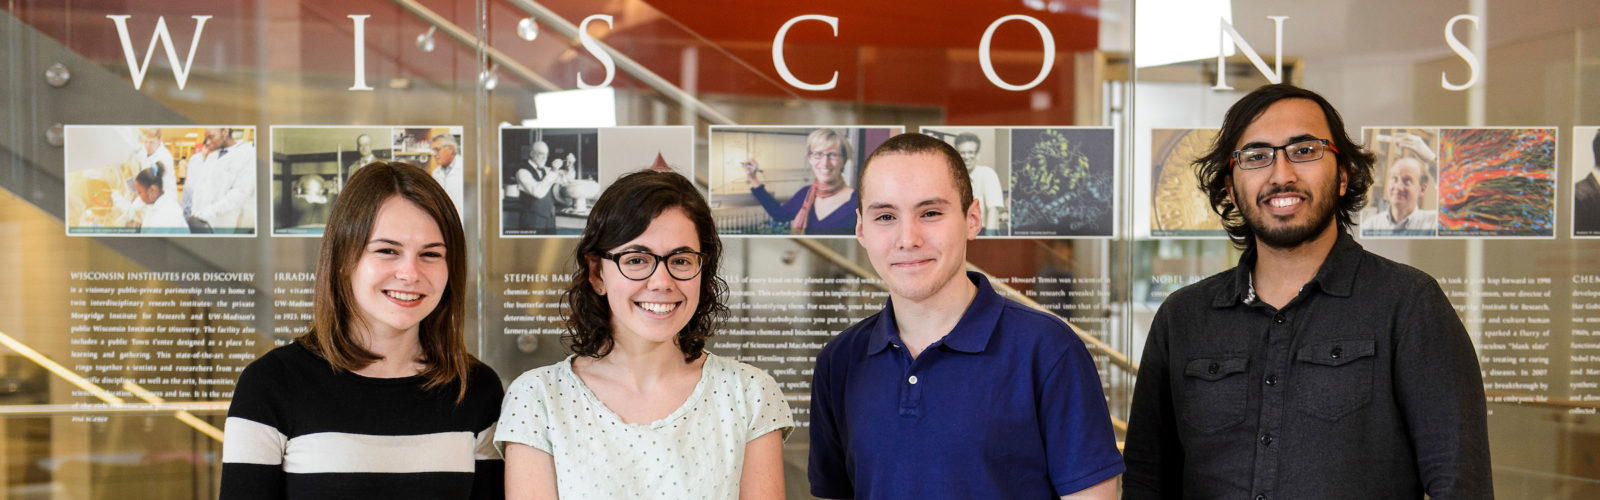 2016 Goldwater Scholars: Bailey G. Flanigan, Hannah M. Mast, Idris Boukahil and Thejas S. Wesley